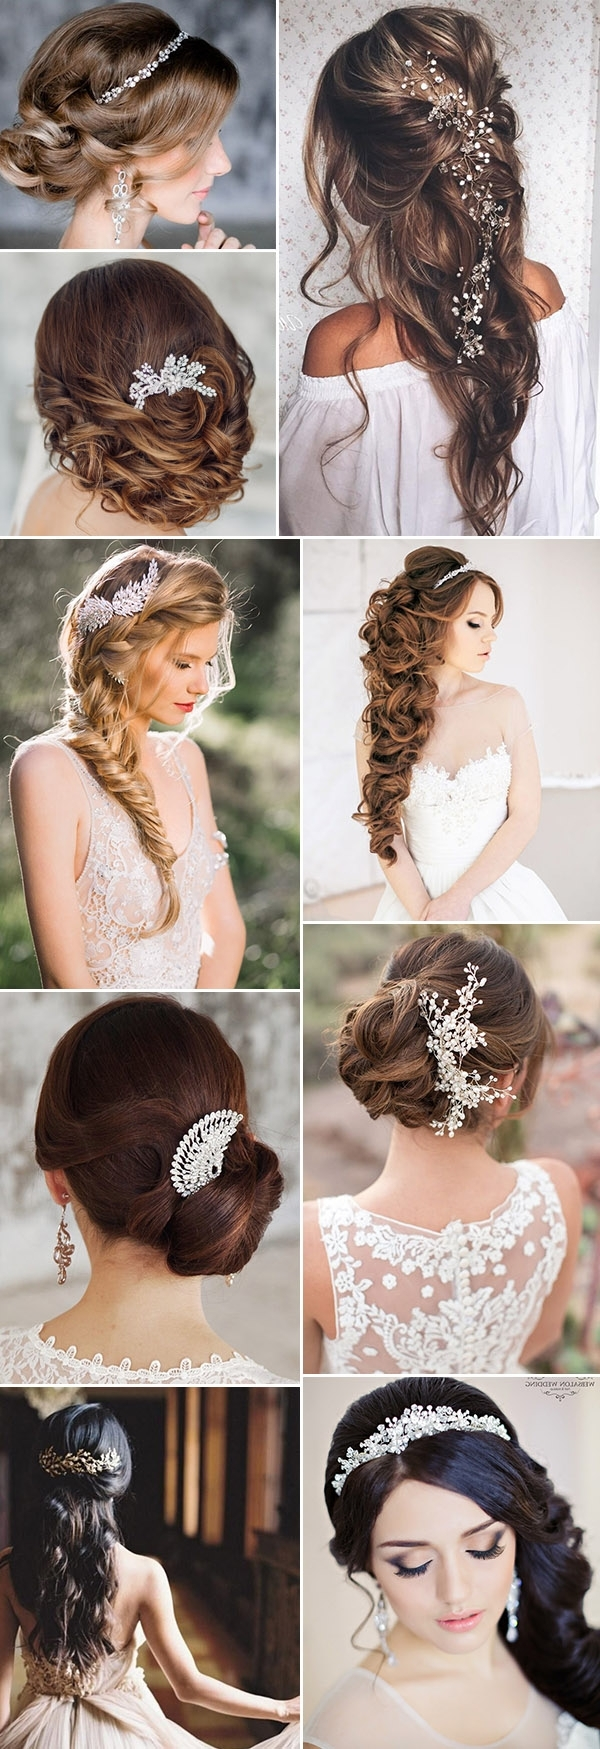 Top 20 Bridal Headpieces For Your Wedding Hairstyles Intended For Preferred Wedding Hairstyles With Hair Jewelry (View 4 of 15)